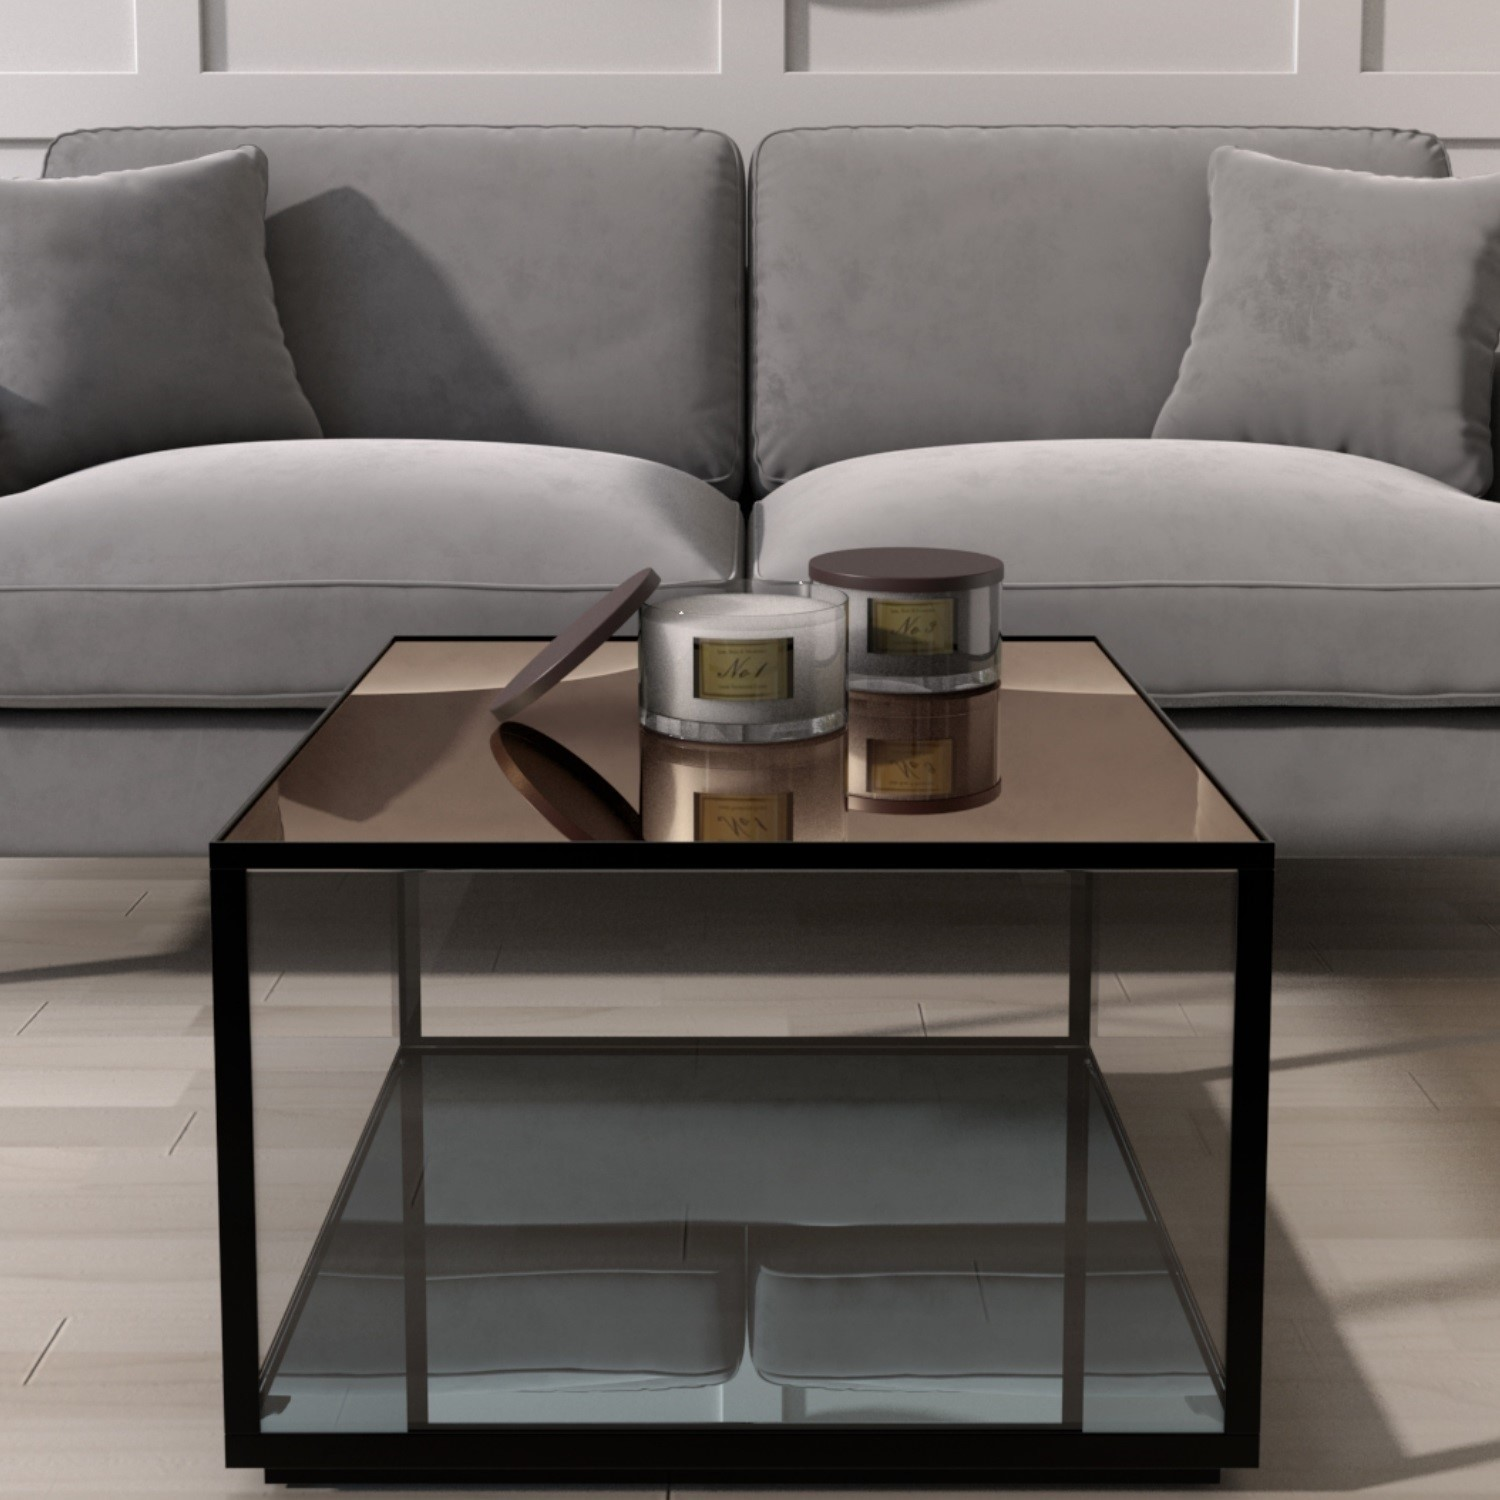 Mirrored Coffee Table with Black Metal Frame  Square